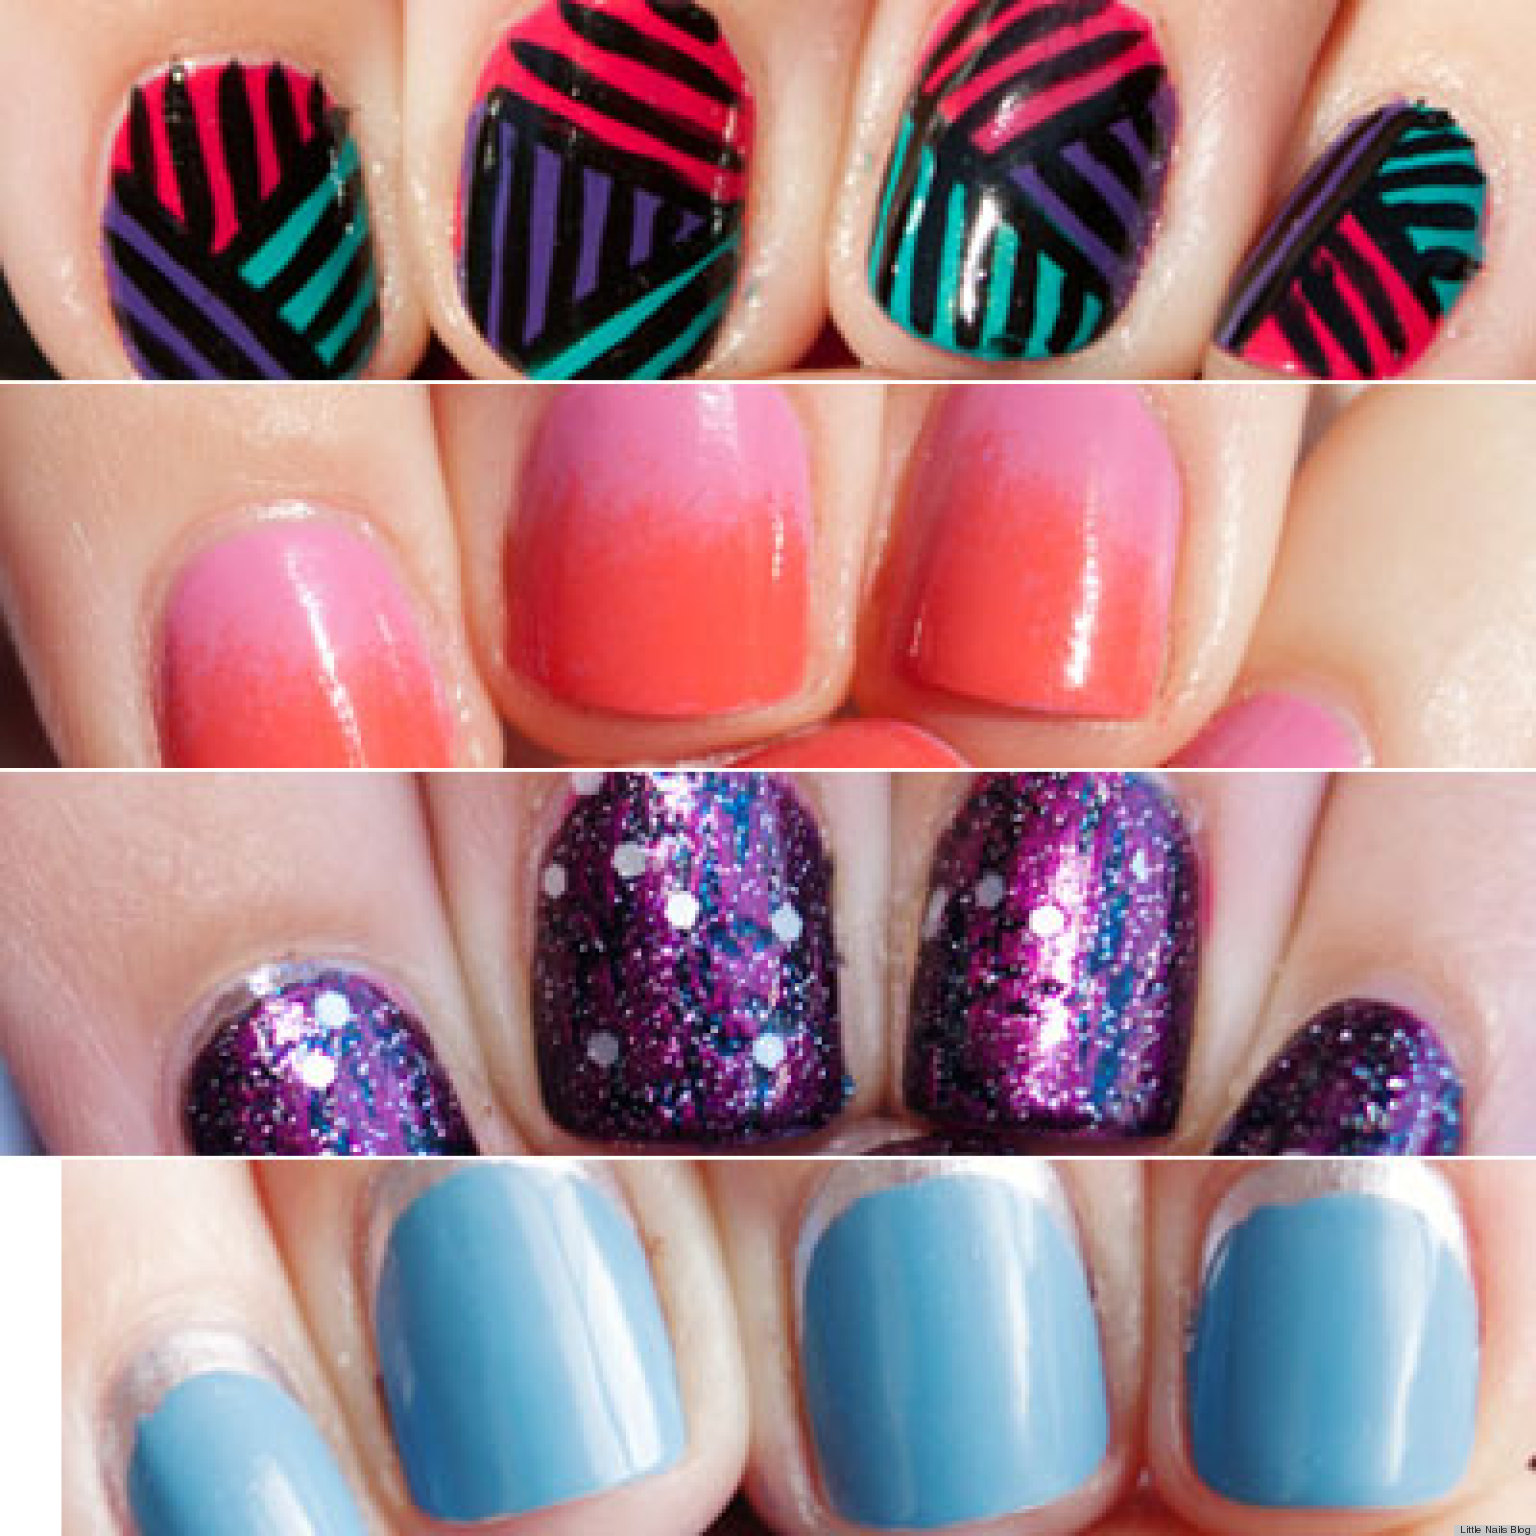 Ideas For Short Nails Easy Nail Art: 13 Nail Art Ideas For Teeny Tiny Fingertips (PHOTOS